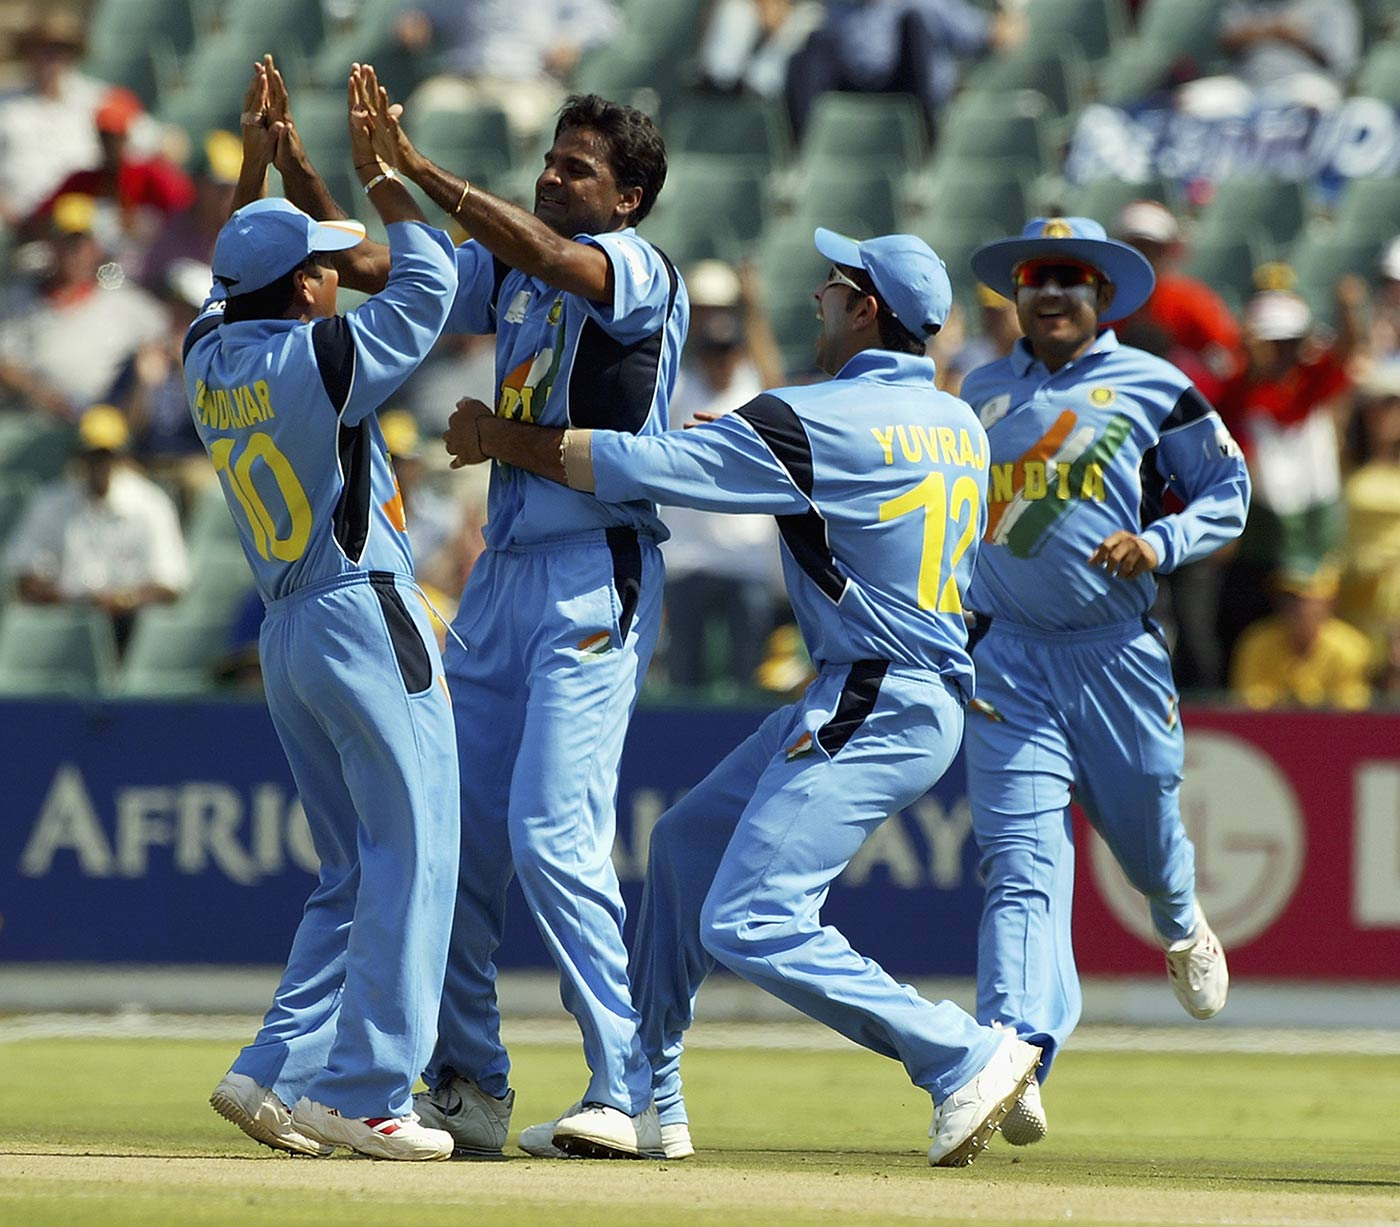 In the 2003 World Cup, Srinath was golden till the final